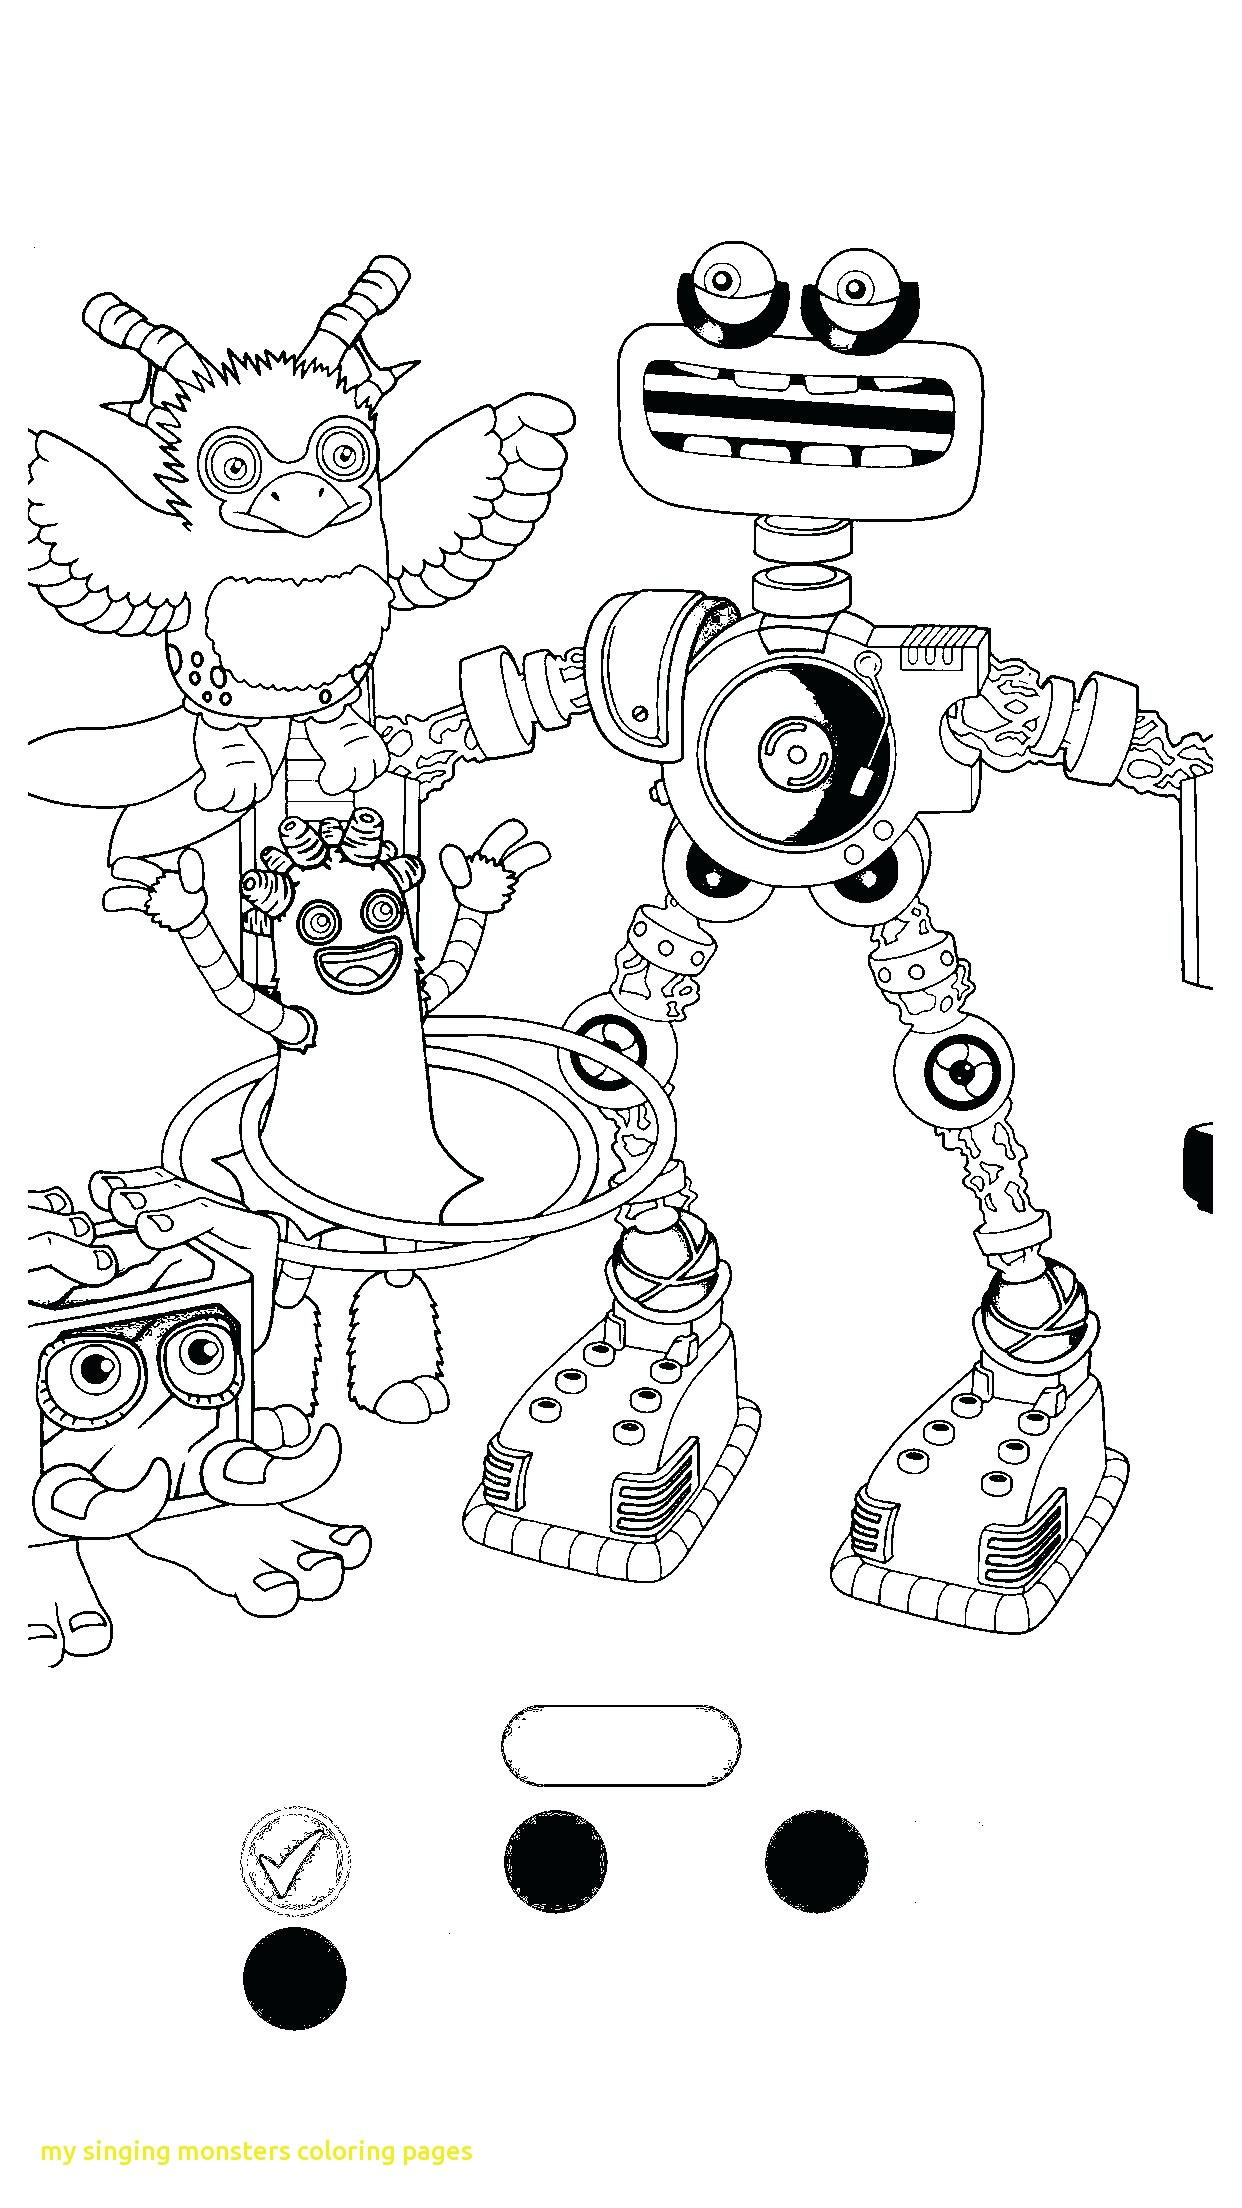 My Singing Monsters Coloring Pages - My Singing Monsters Coloring Pages Black and White Monsters Coloring